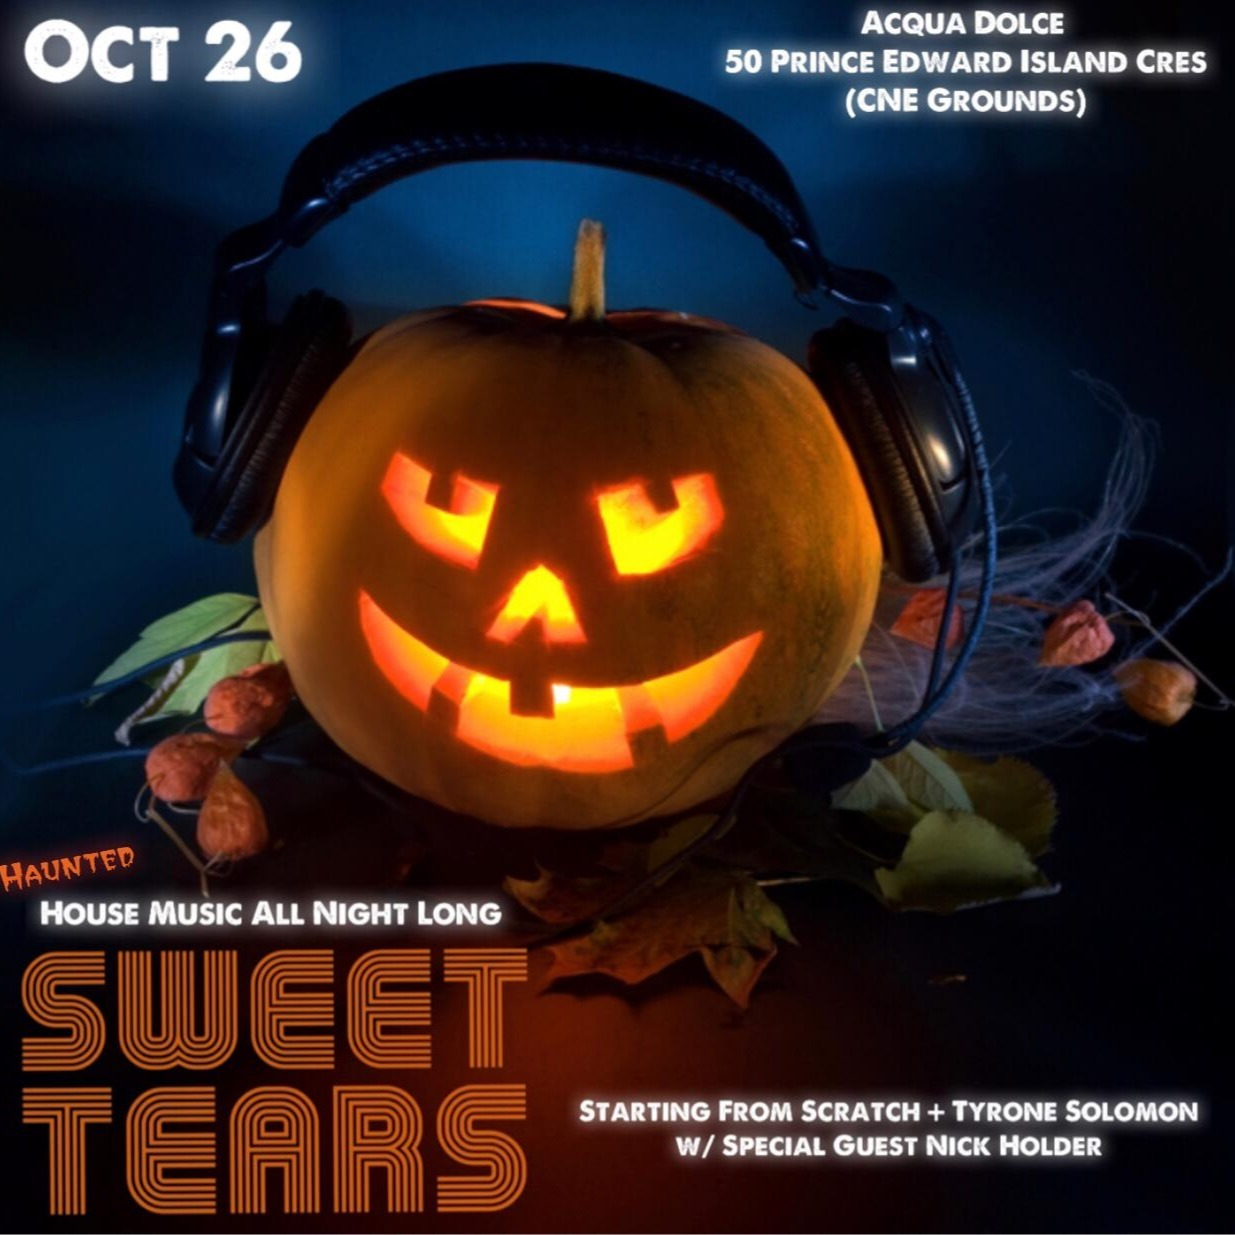 SWEET TEARS - HAUNTED HOUSE MUSIC ALL NIGHT LONG